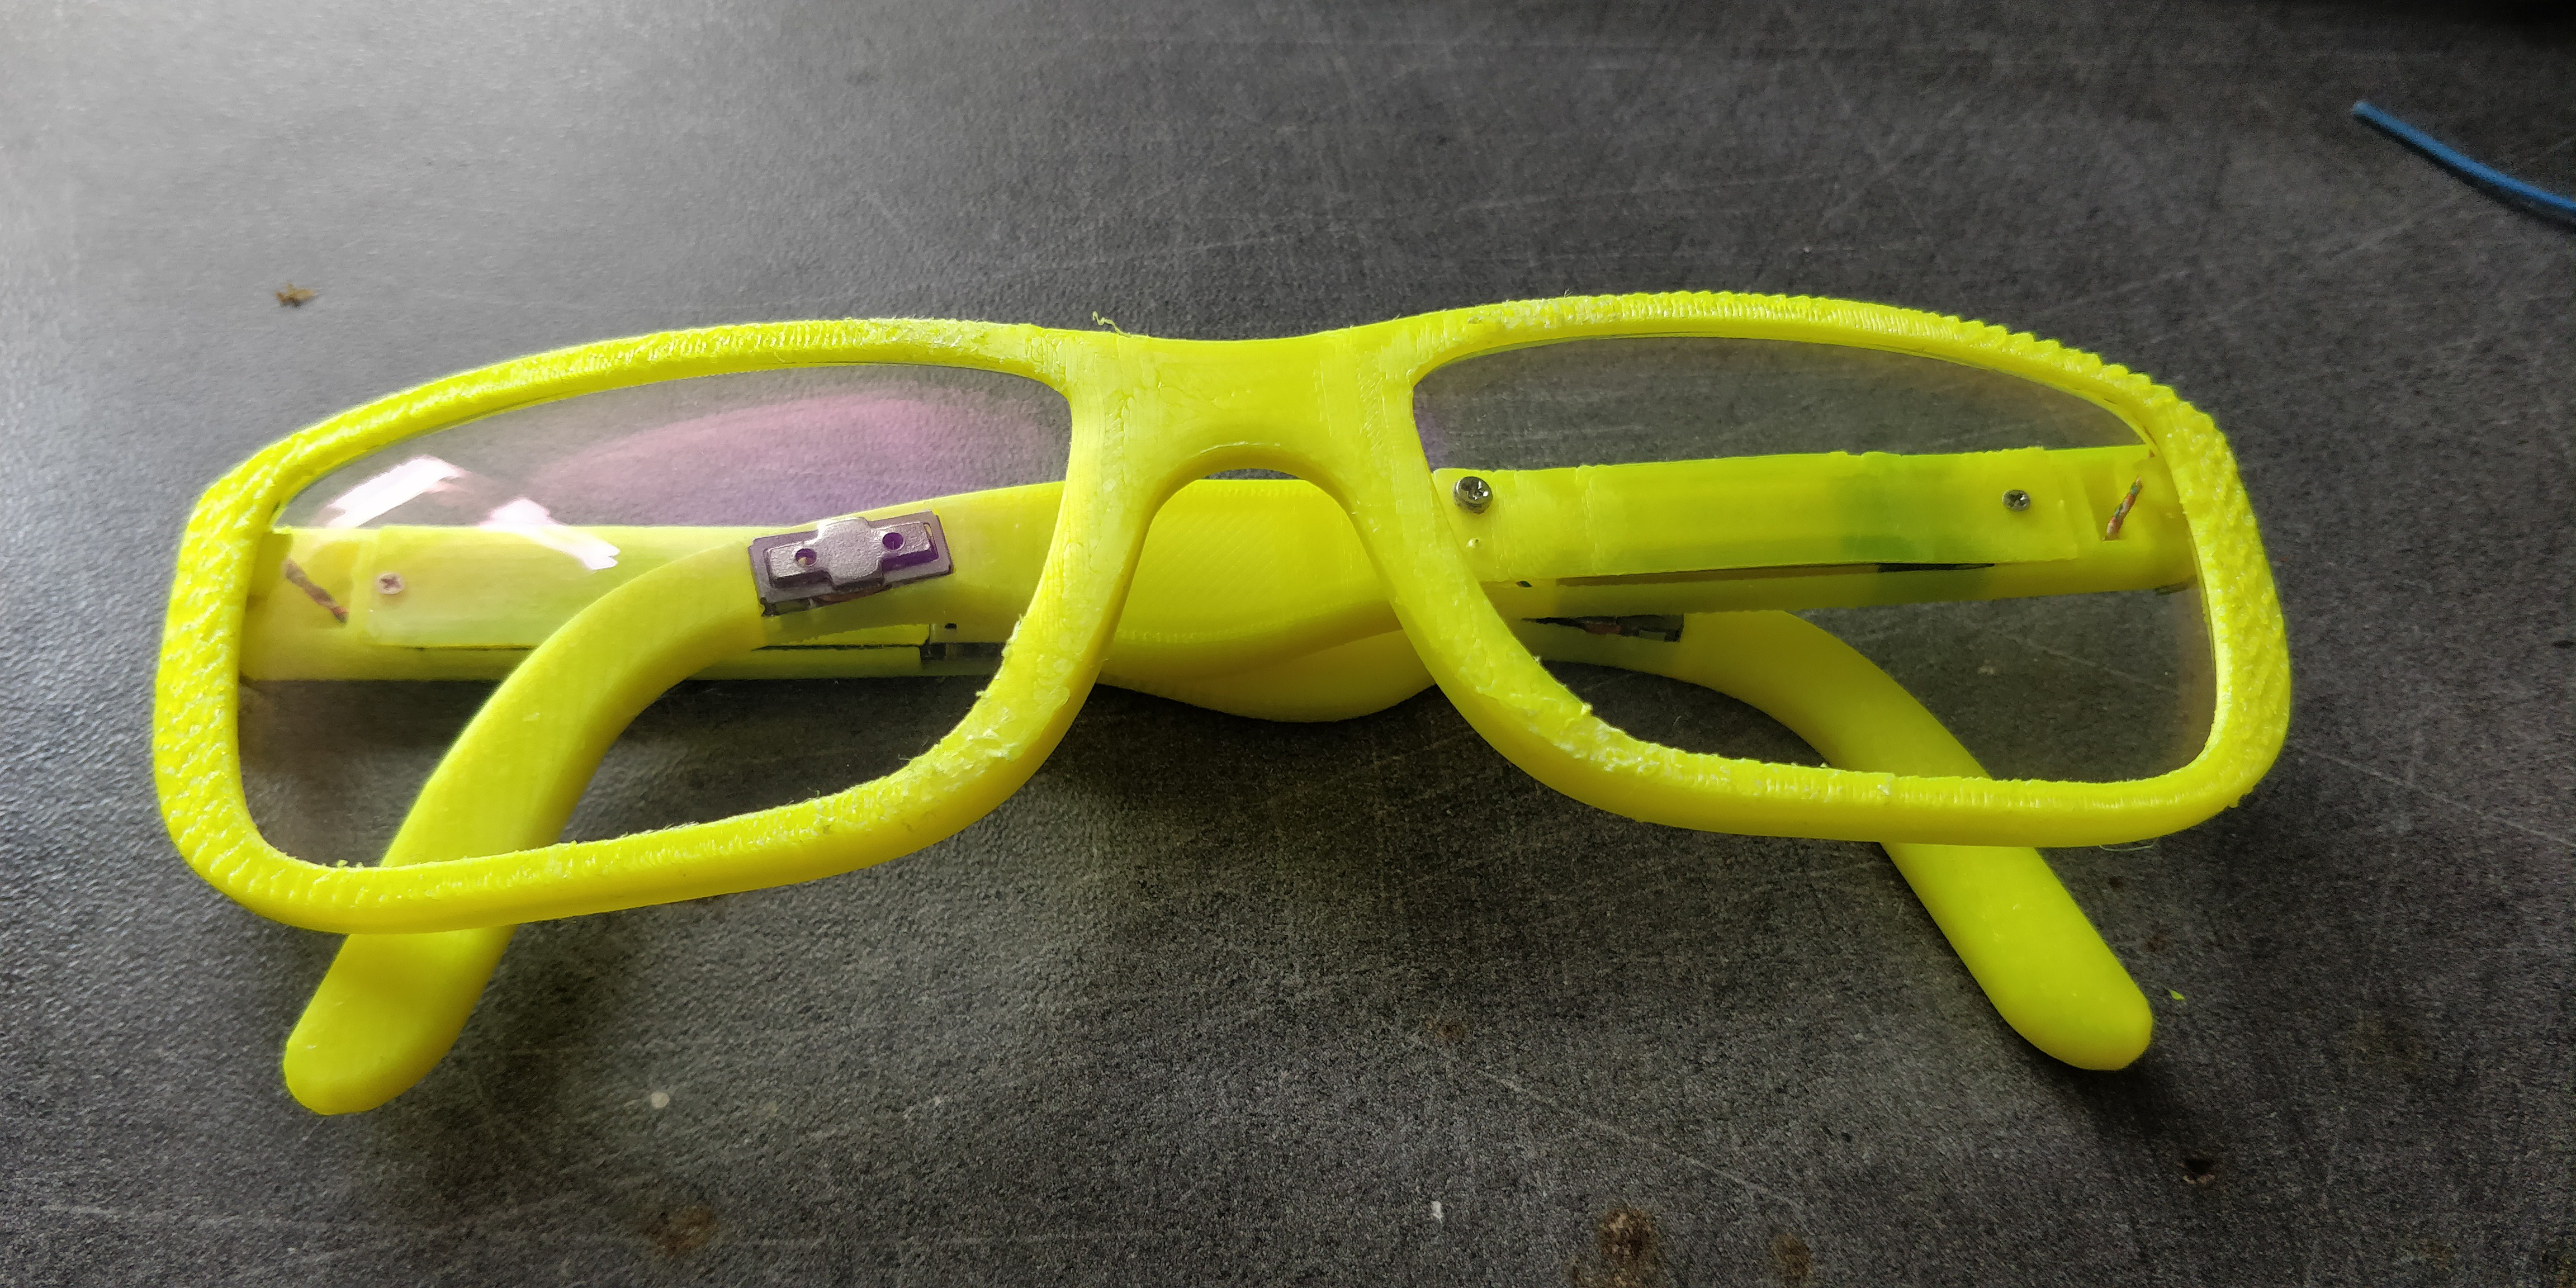 eee91c8c7798 The result is a surprisingly svelte set of specs that you might not  immediately think concealed some electronics. His choice of bright yellow  filament might ...